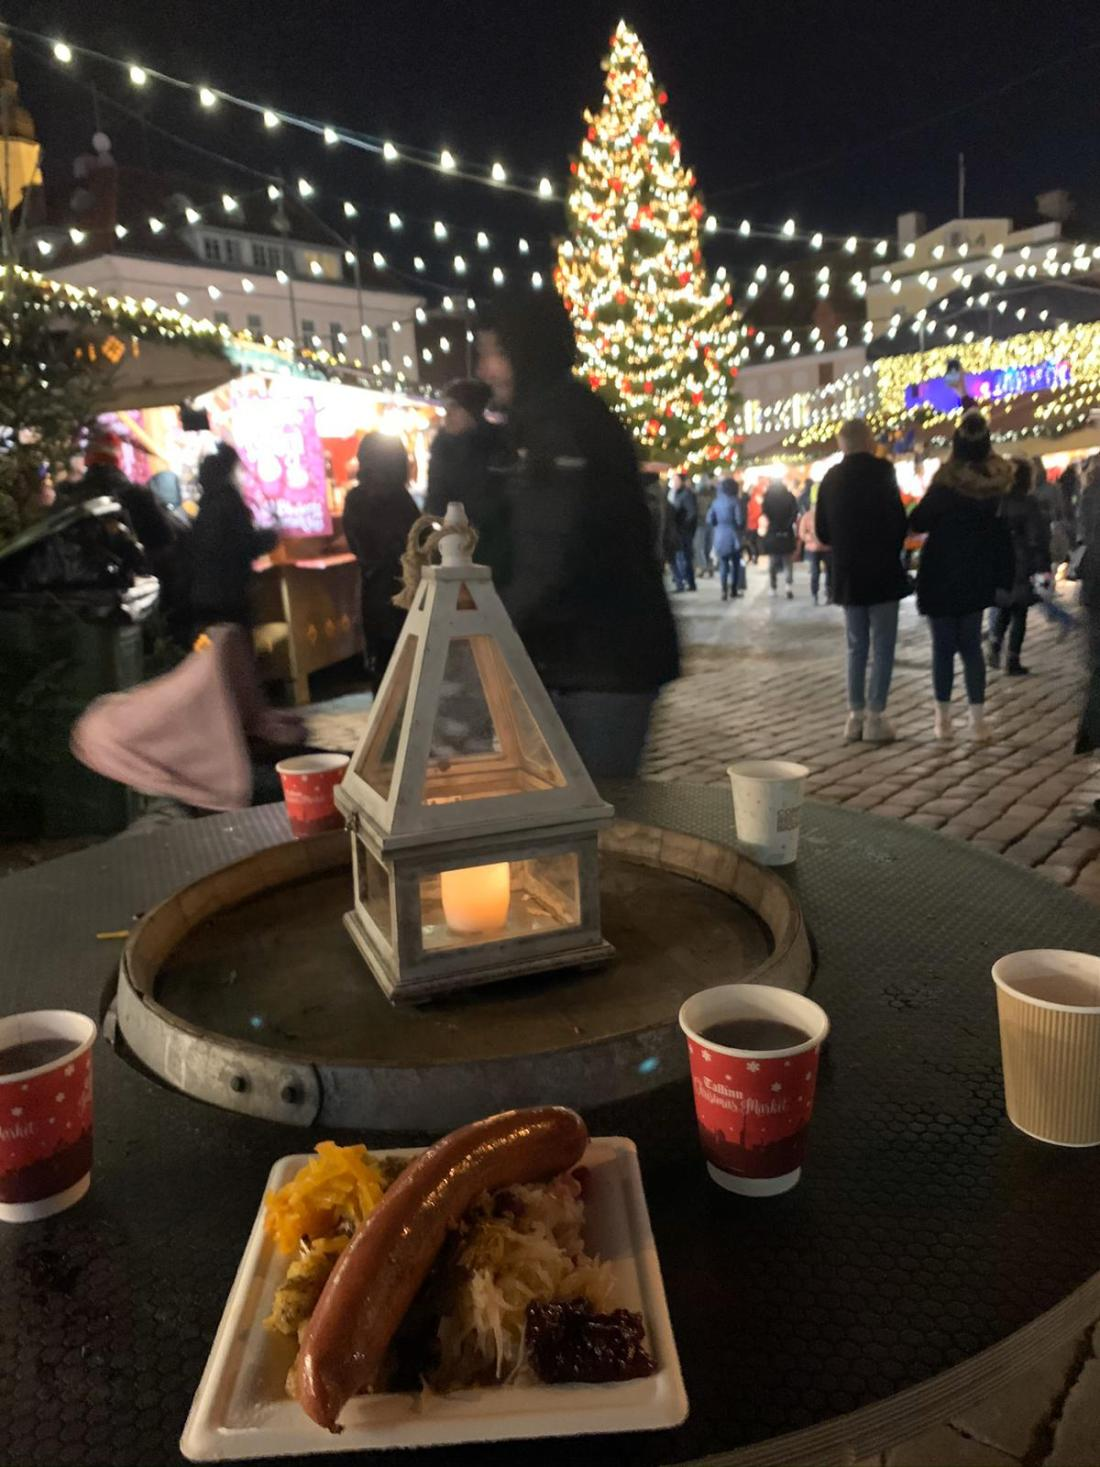 Food from the markets at the Tallinn Christmas Market